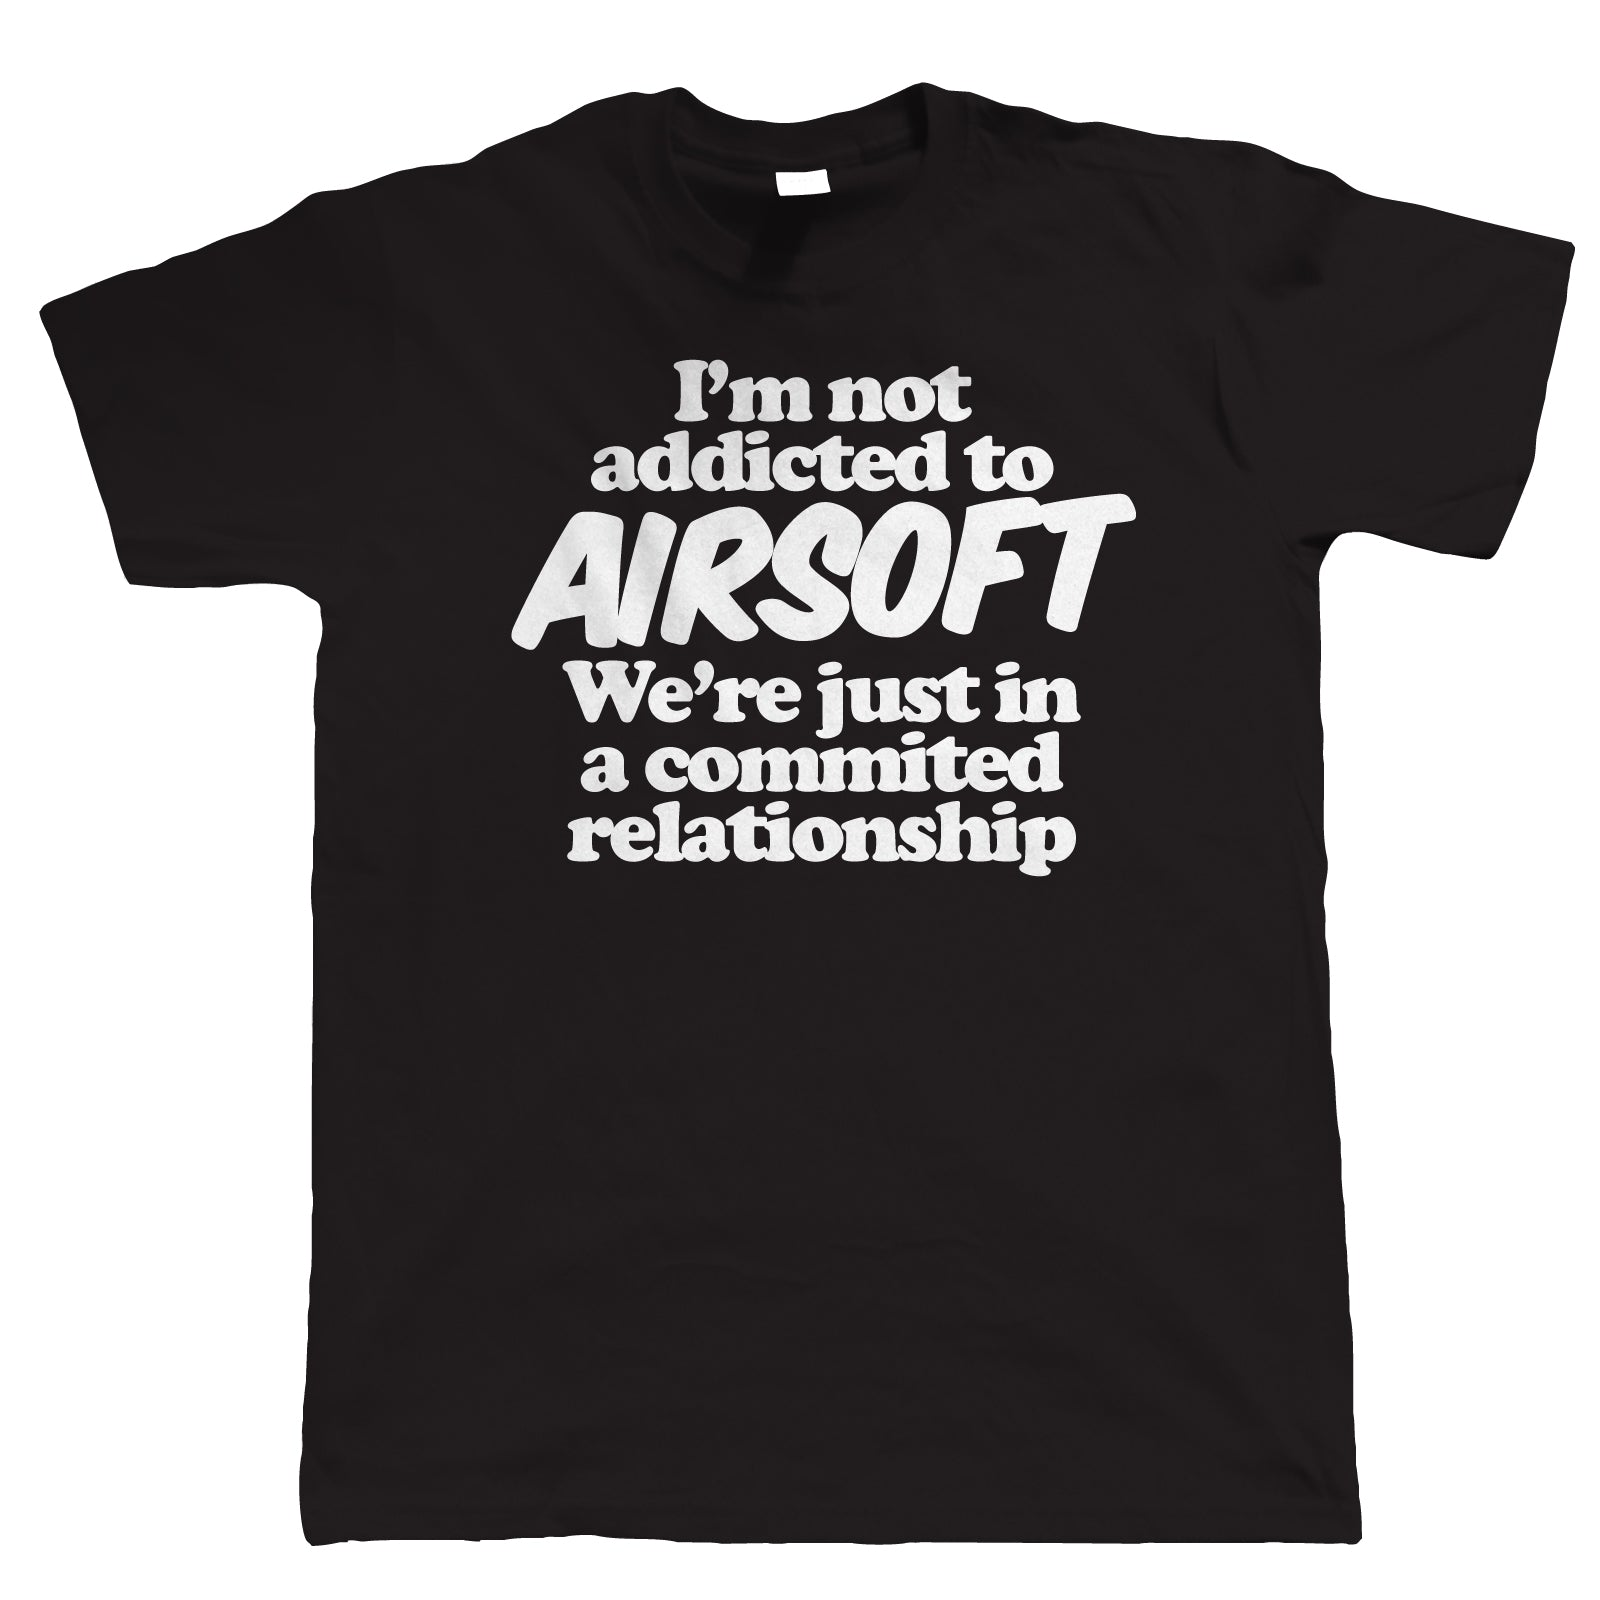 I'm Not Addicted To Airsoft, Mens Funny T-Shirt